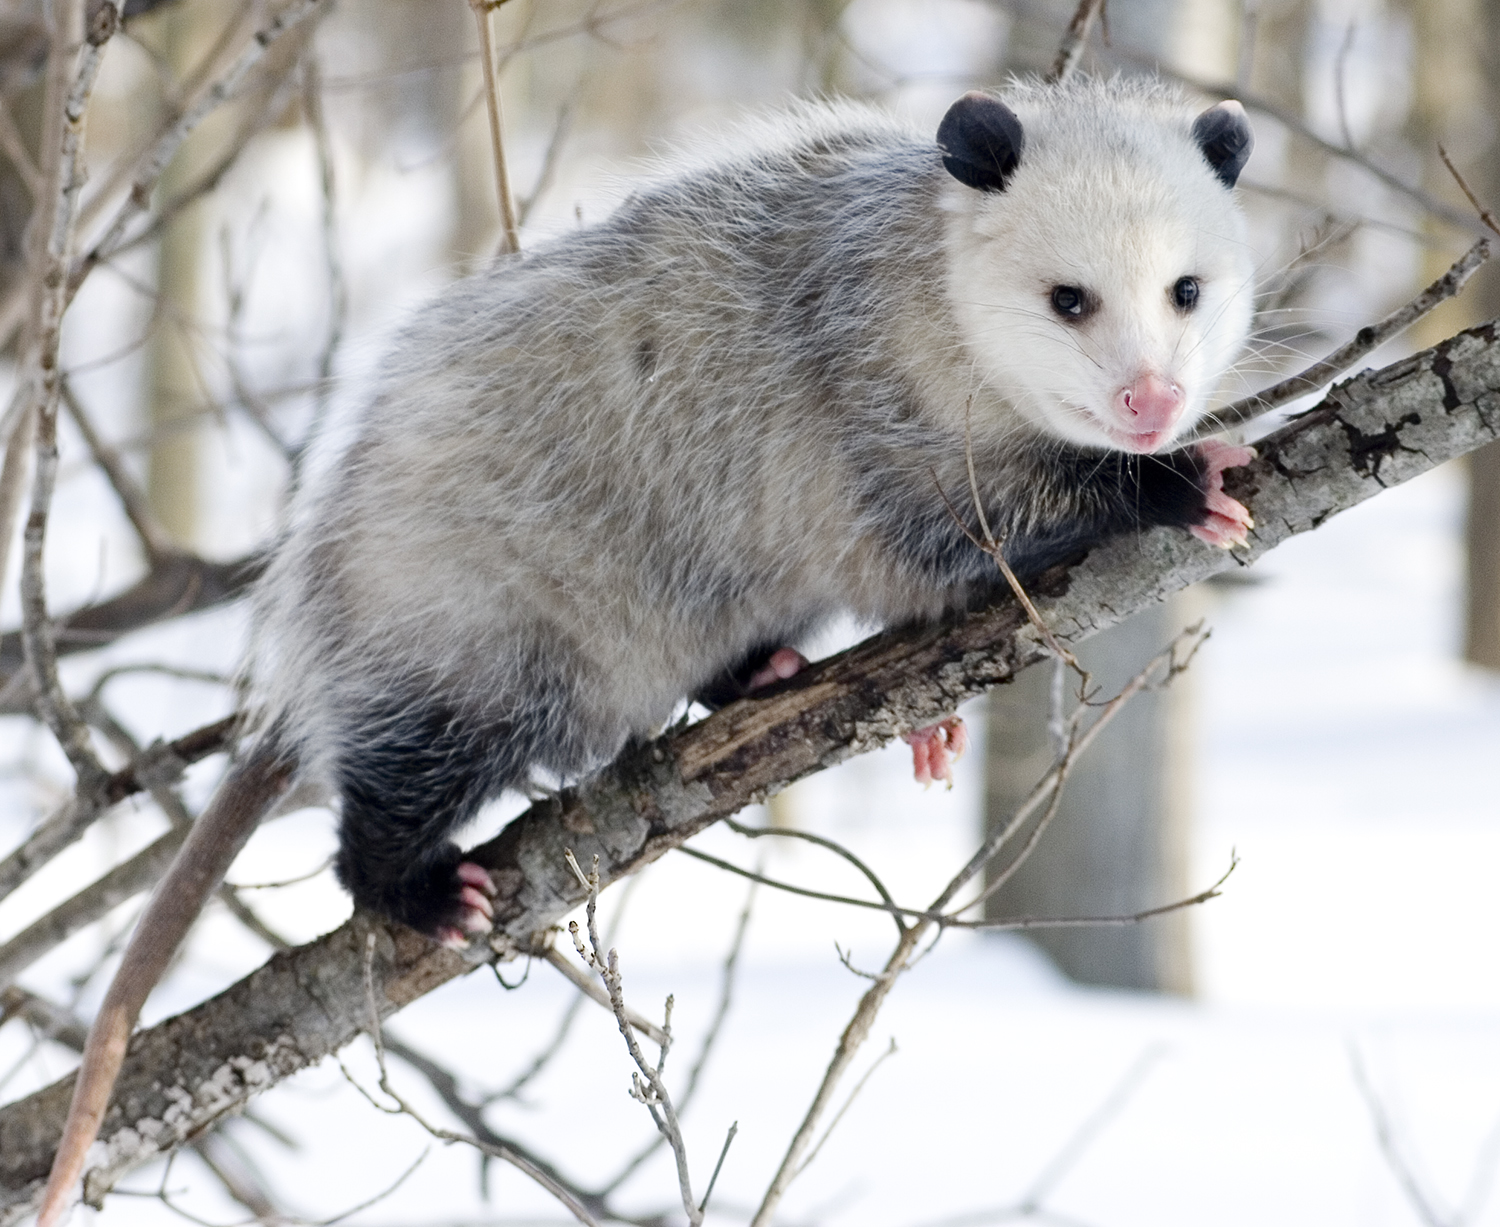 NEW YORK ecologist says OPOSSUMS are very efficient TICK killers ...